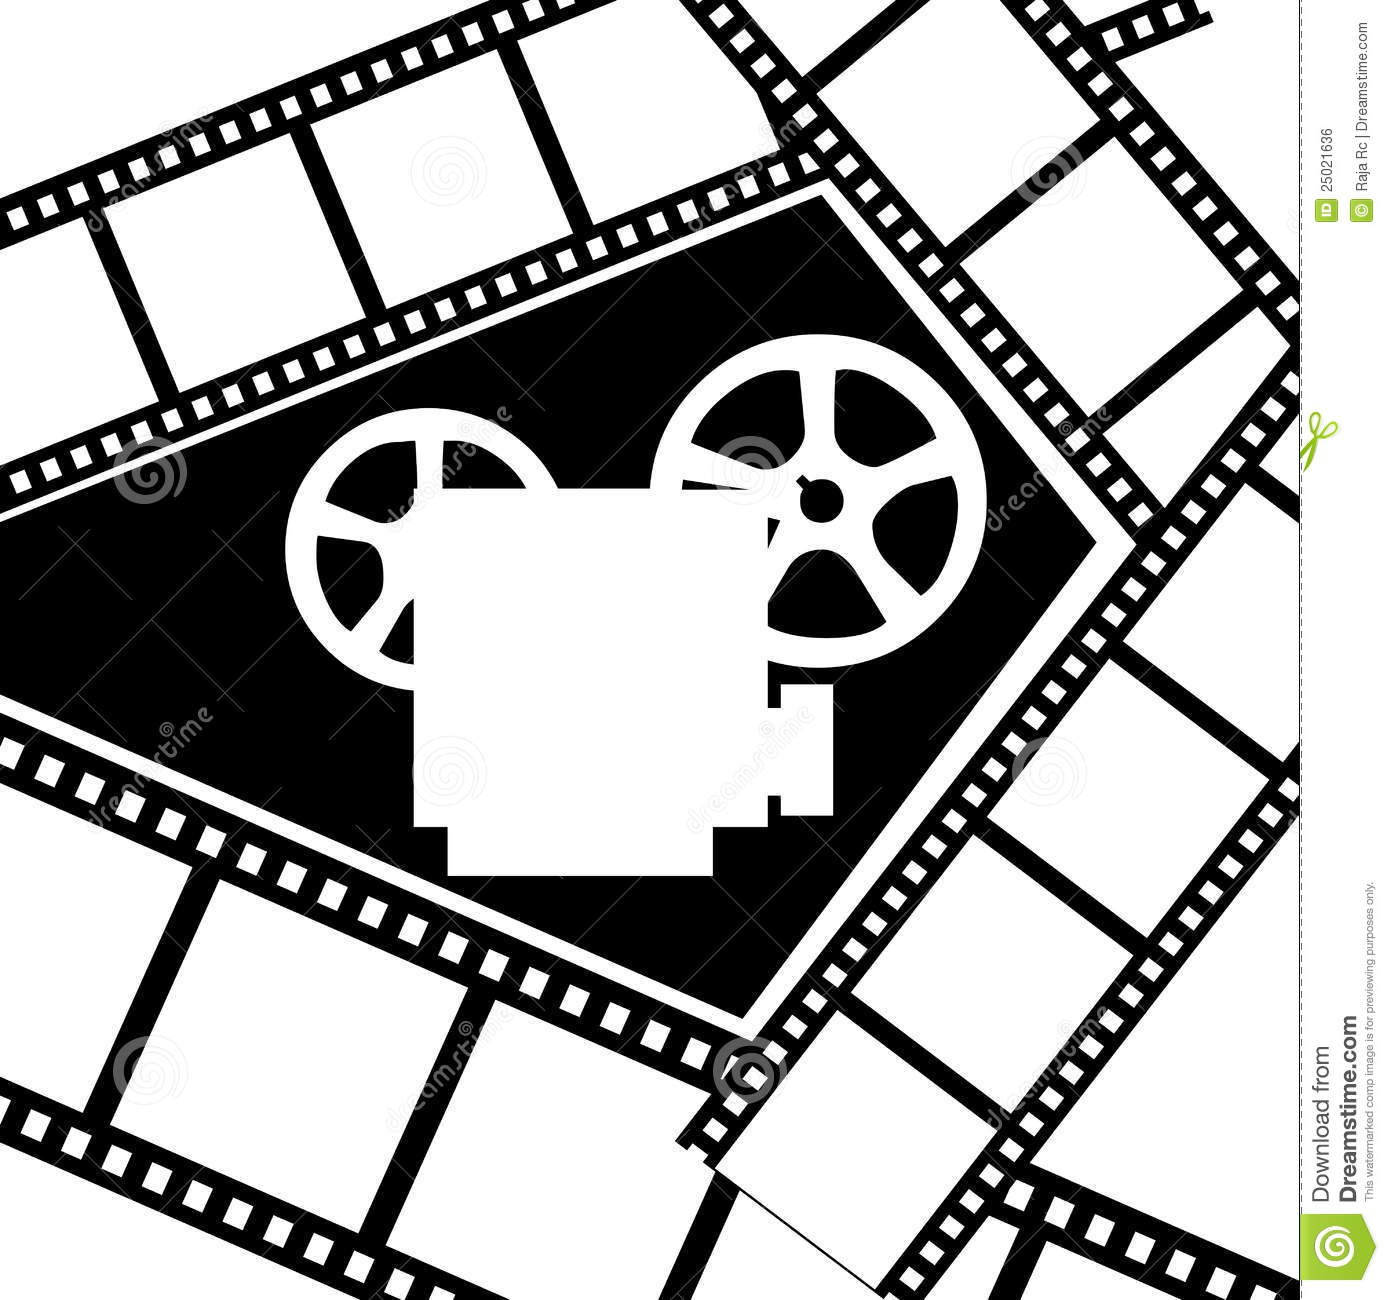 Movie Projector Royalty Free Stock Image - Image: 25021636